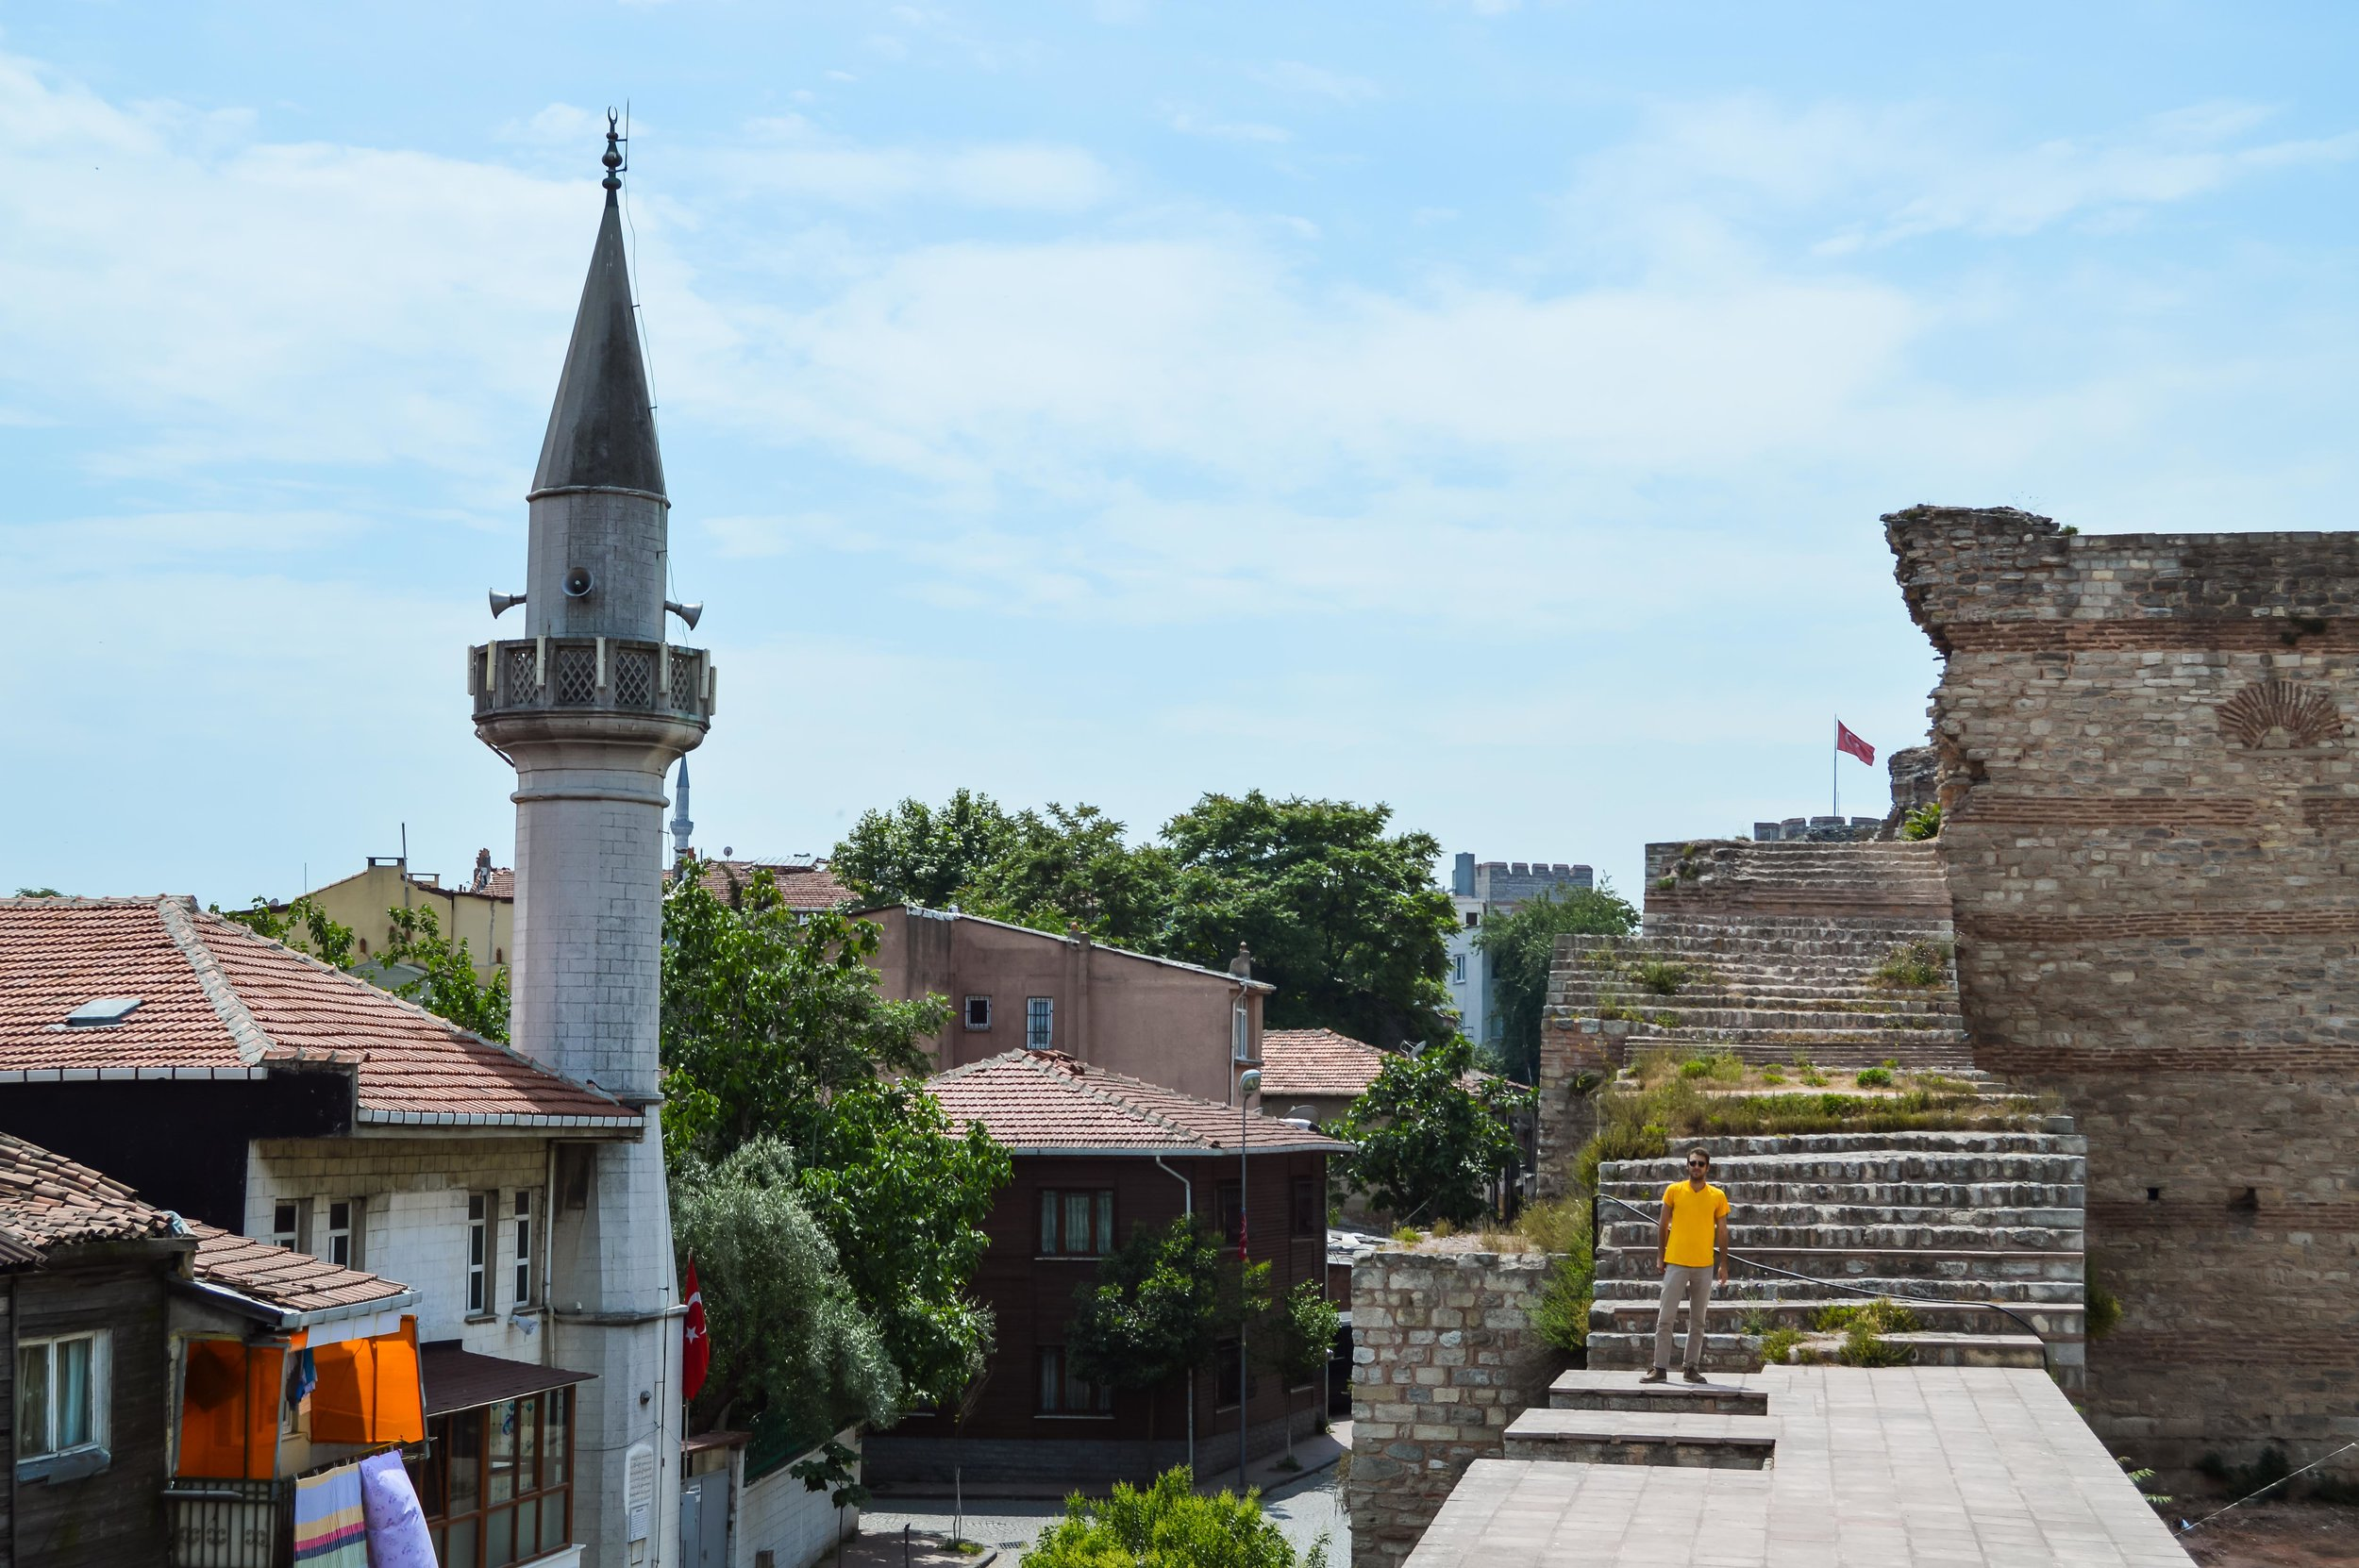 View from Walls of Constantinople Rowhomes Mosques Skyline Bosporus Bosphorus Blue Sky Muslim Ottoman Empire Architecture Istanbul Turkey